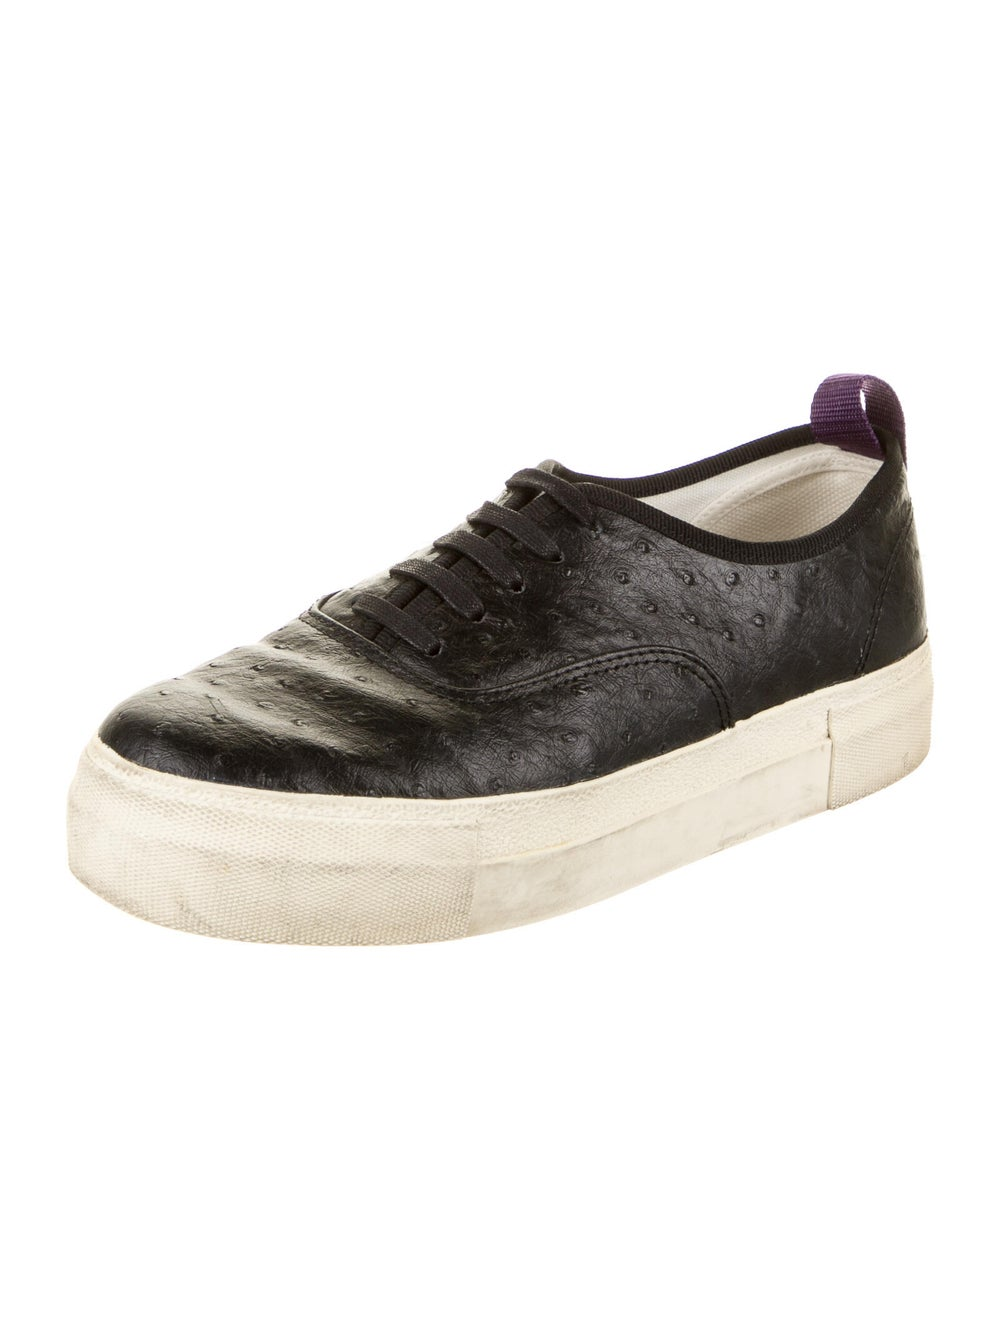 Eytys Ostrich Sneakers Black - image 2